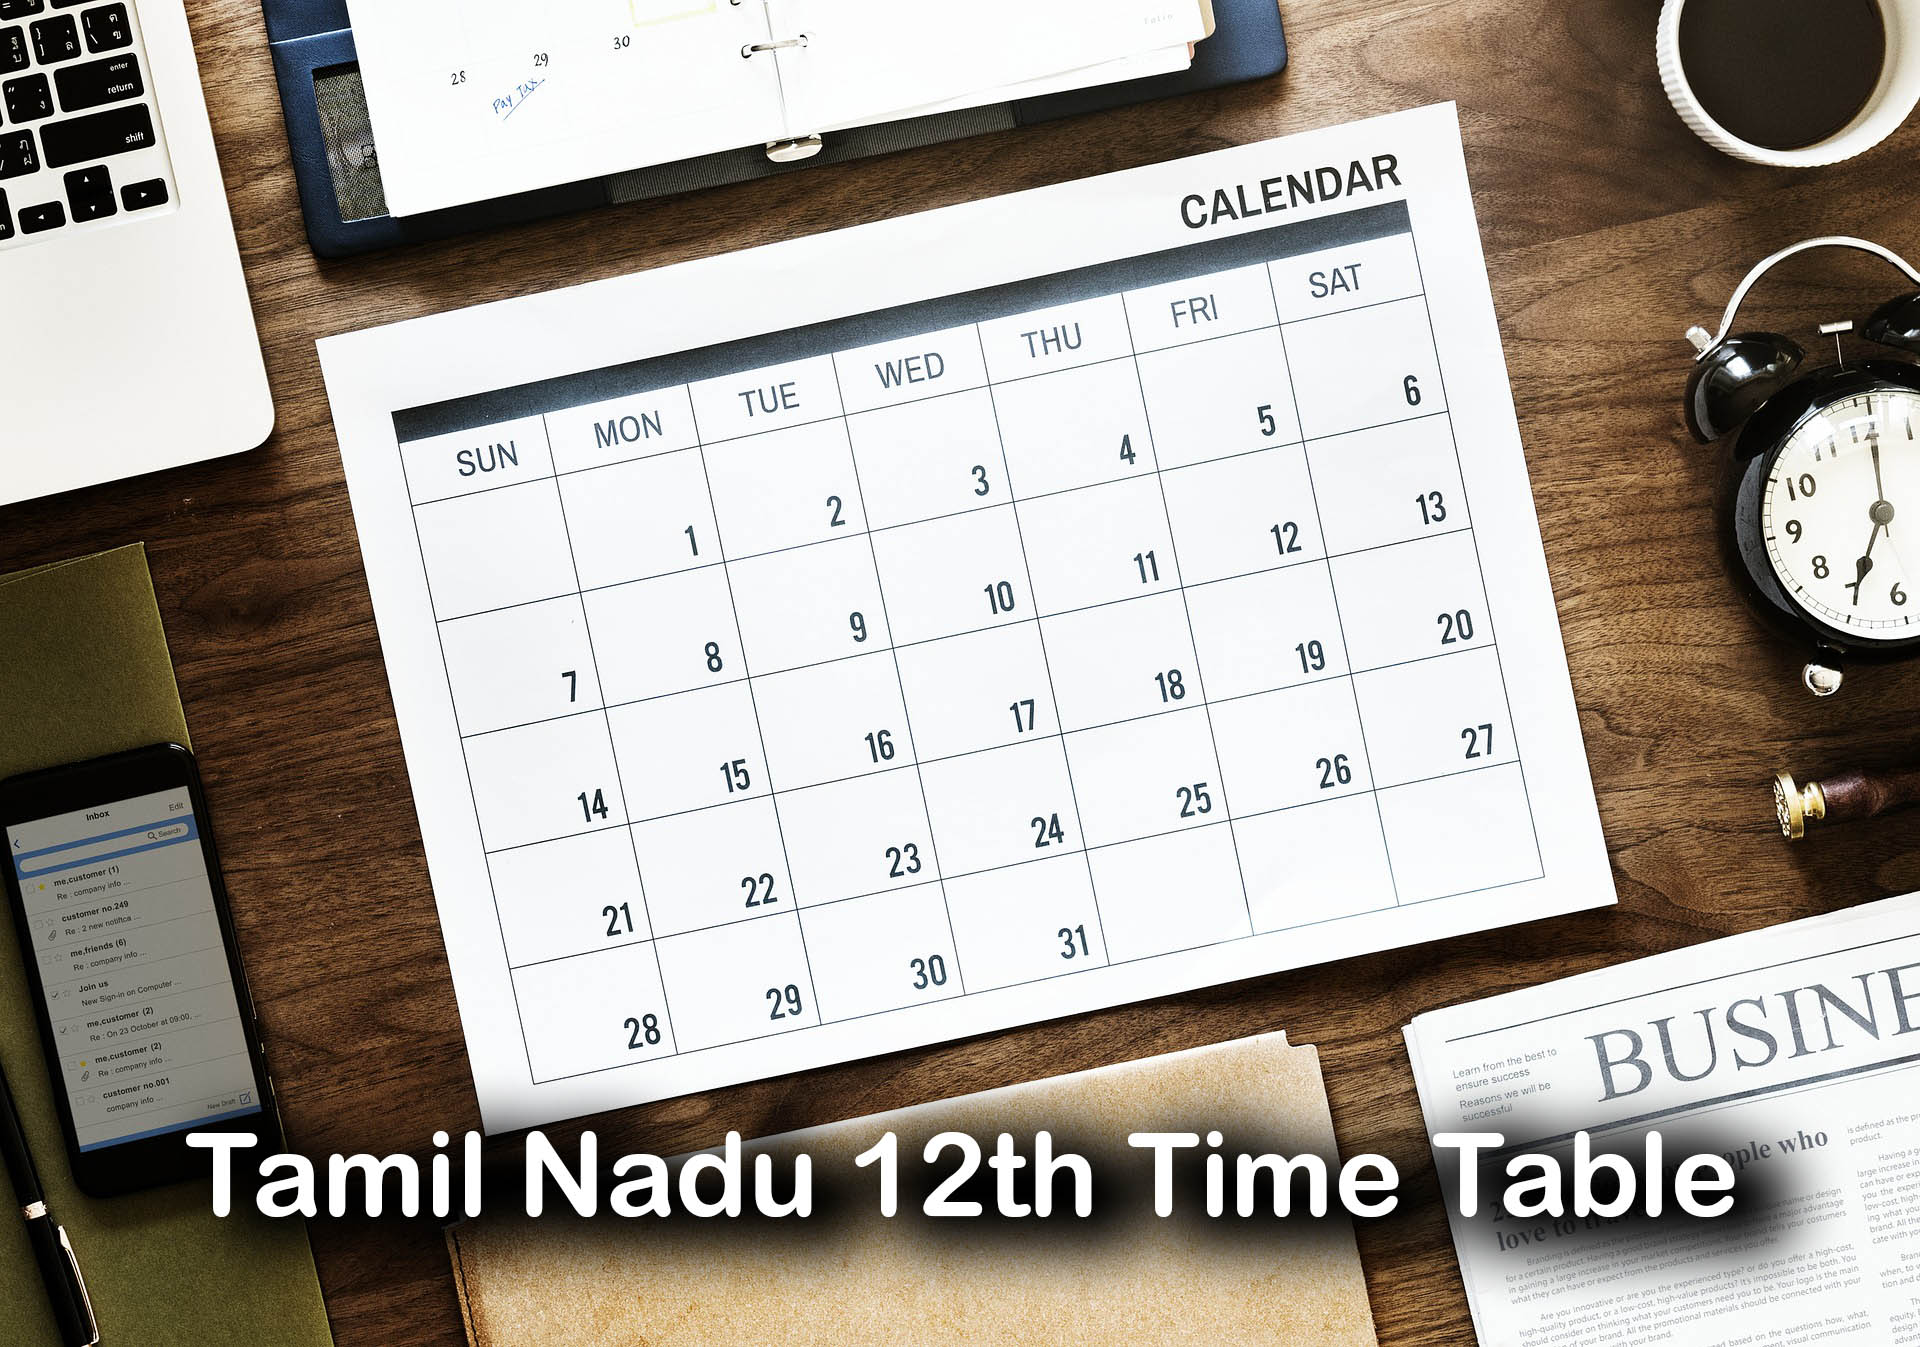 Tamil Nadu 12th Time Table 2020 : Download TN HSC Time Table PDF